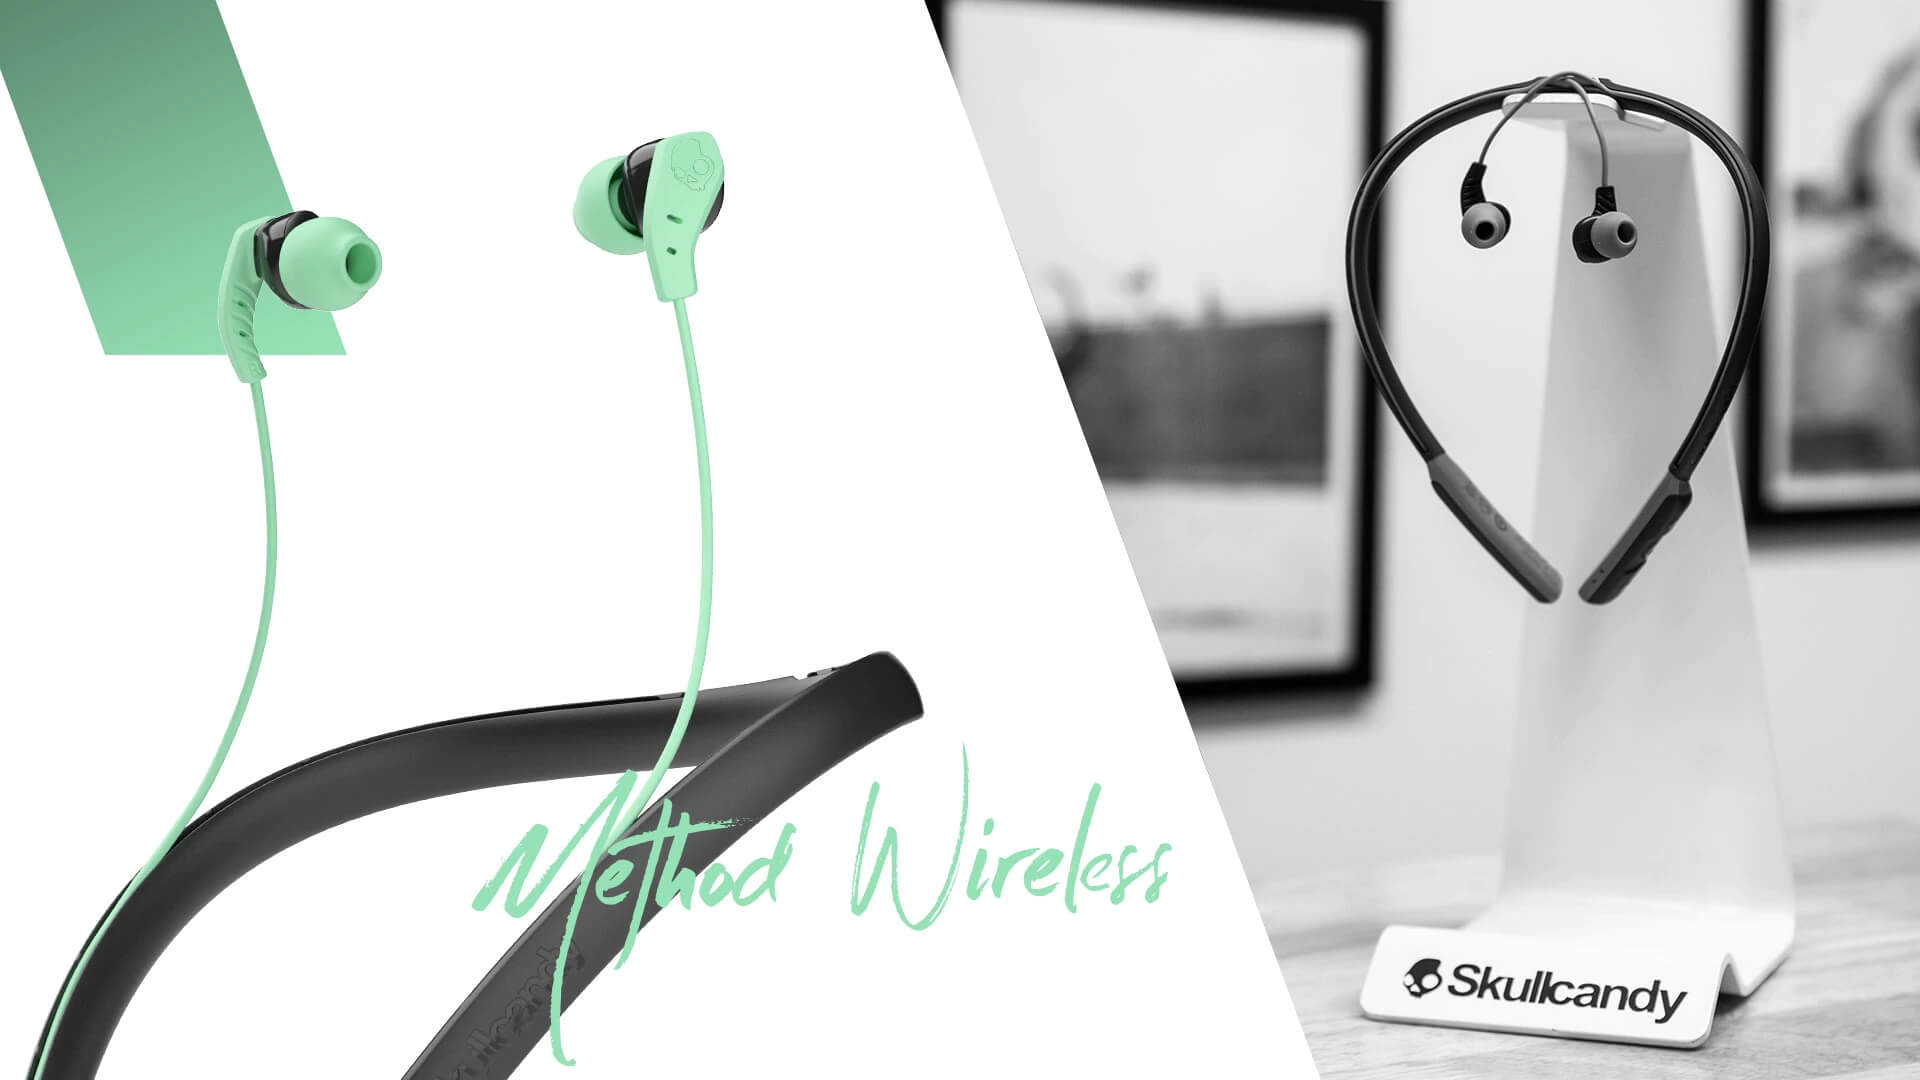 best-neckband-headphone-earphone-wireless-bluetooth-skullcandy-method